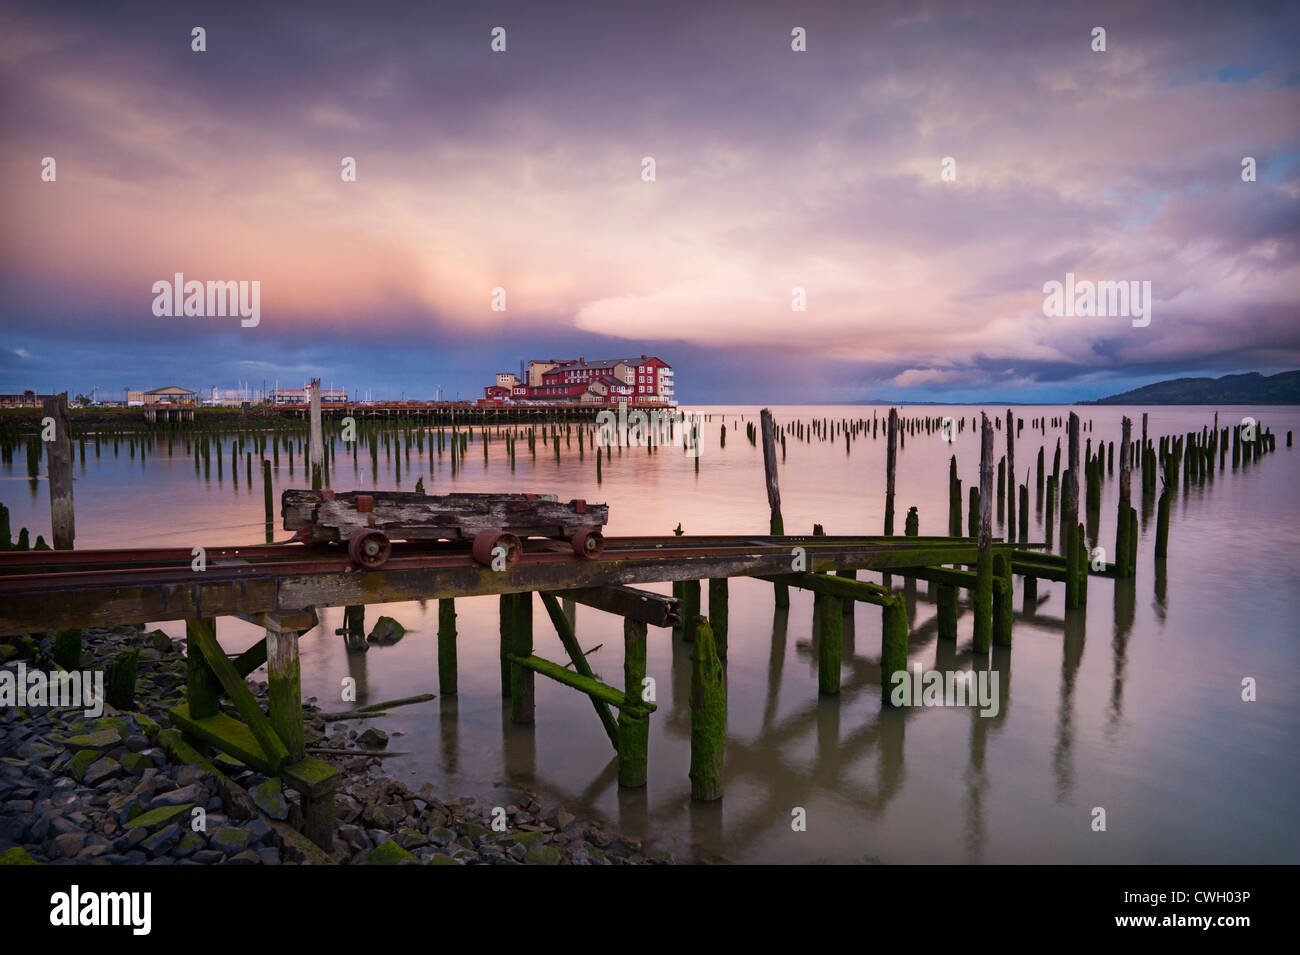 Spectacular clouds and sunrise light reflected in the Columbia River with hundred-year old pilings and the Cannery - Stock Image